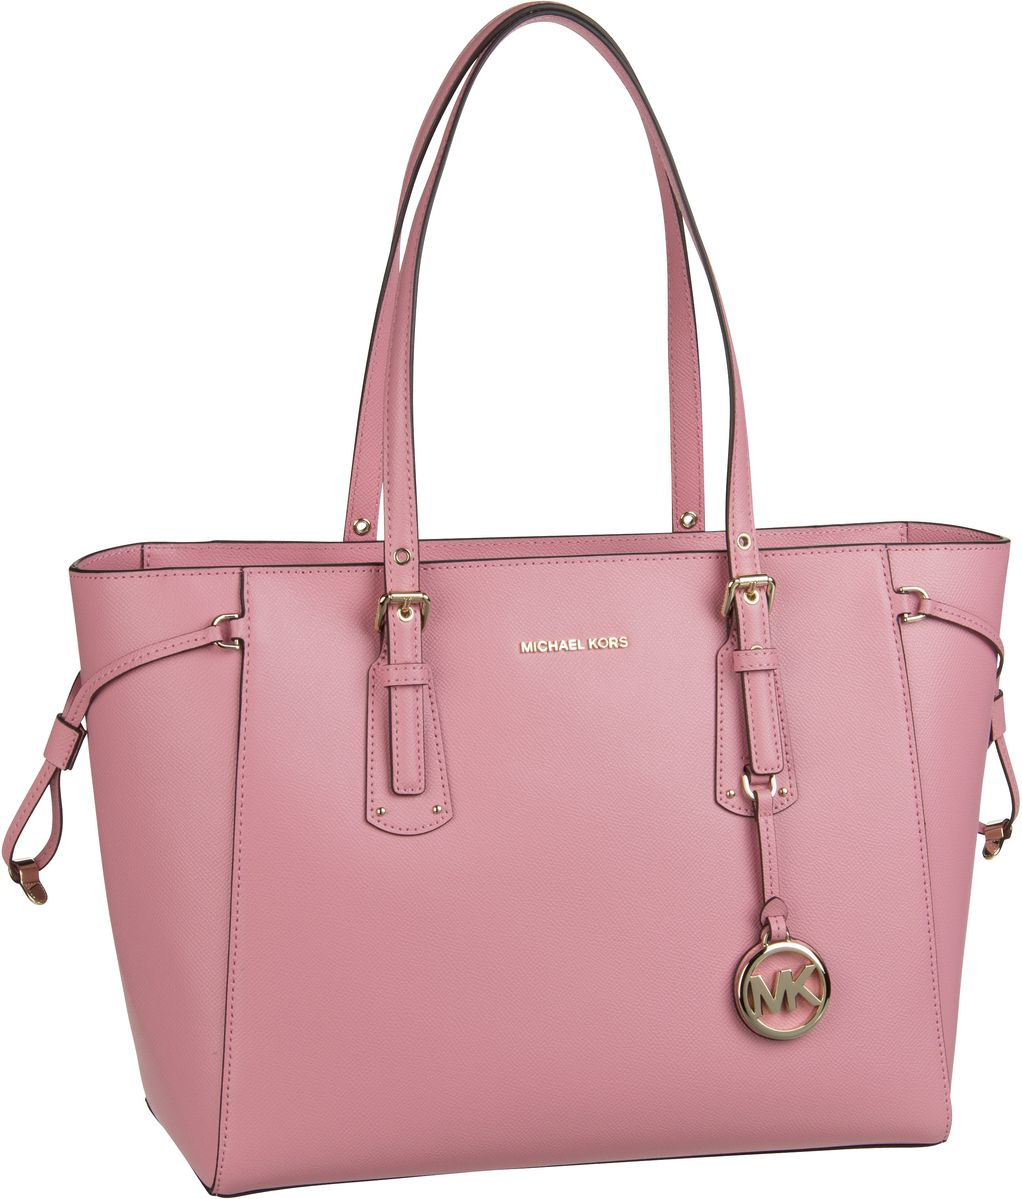 Michael Kors Handtasche Voyager Medium MF TZ Tote Carnation